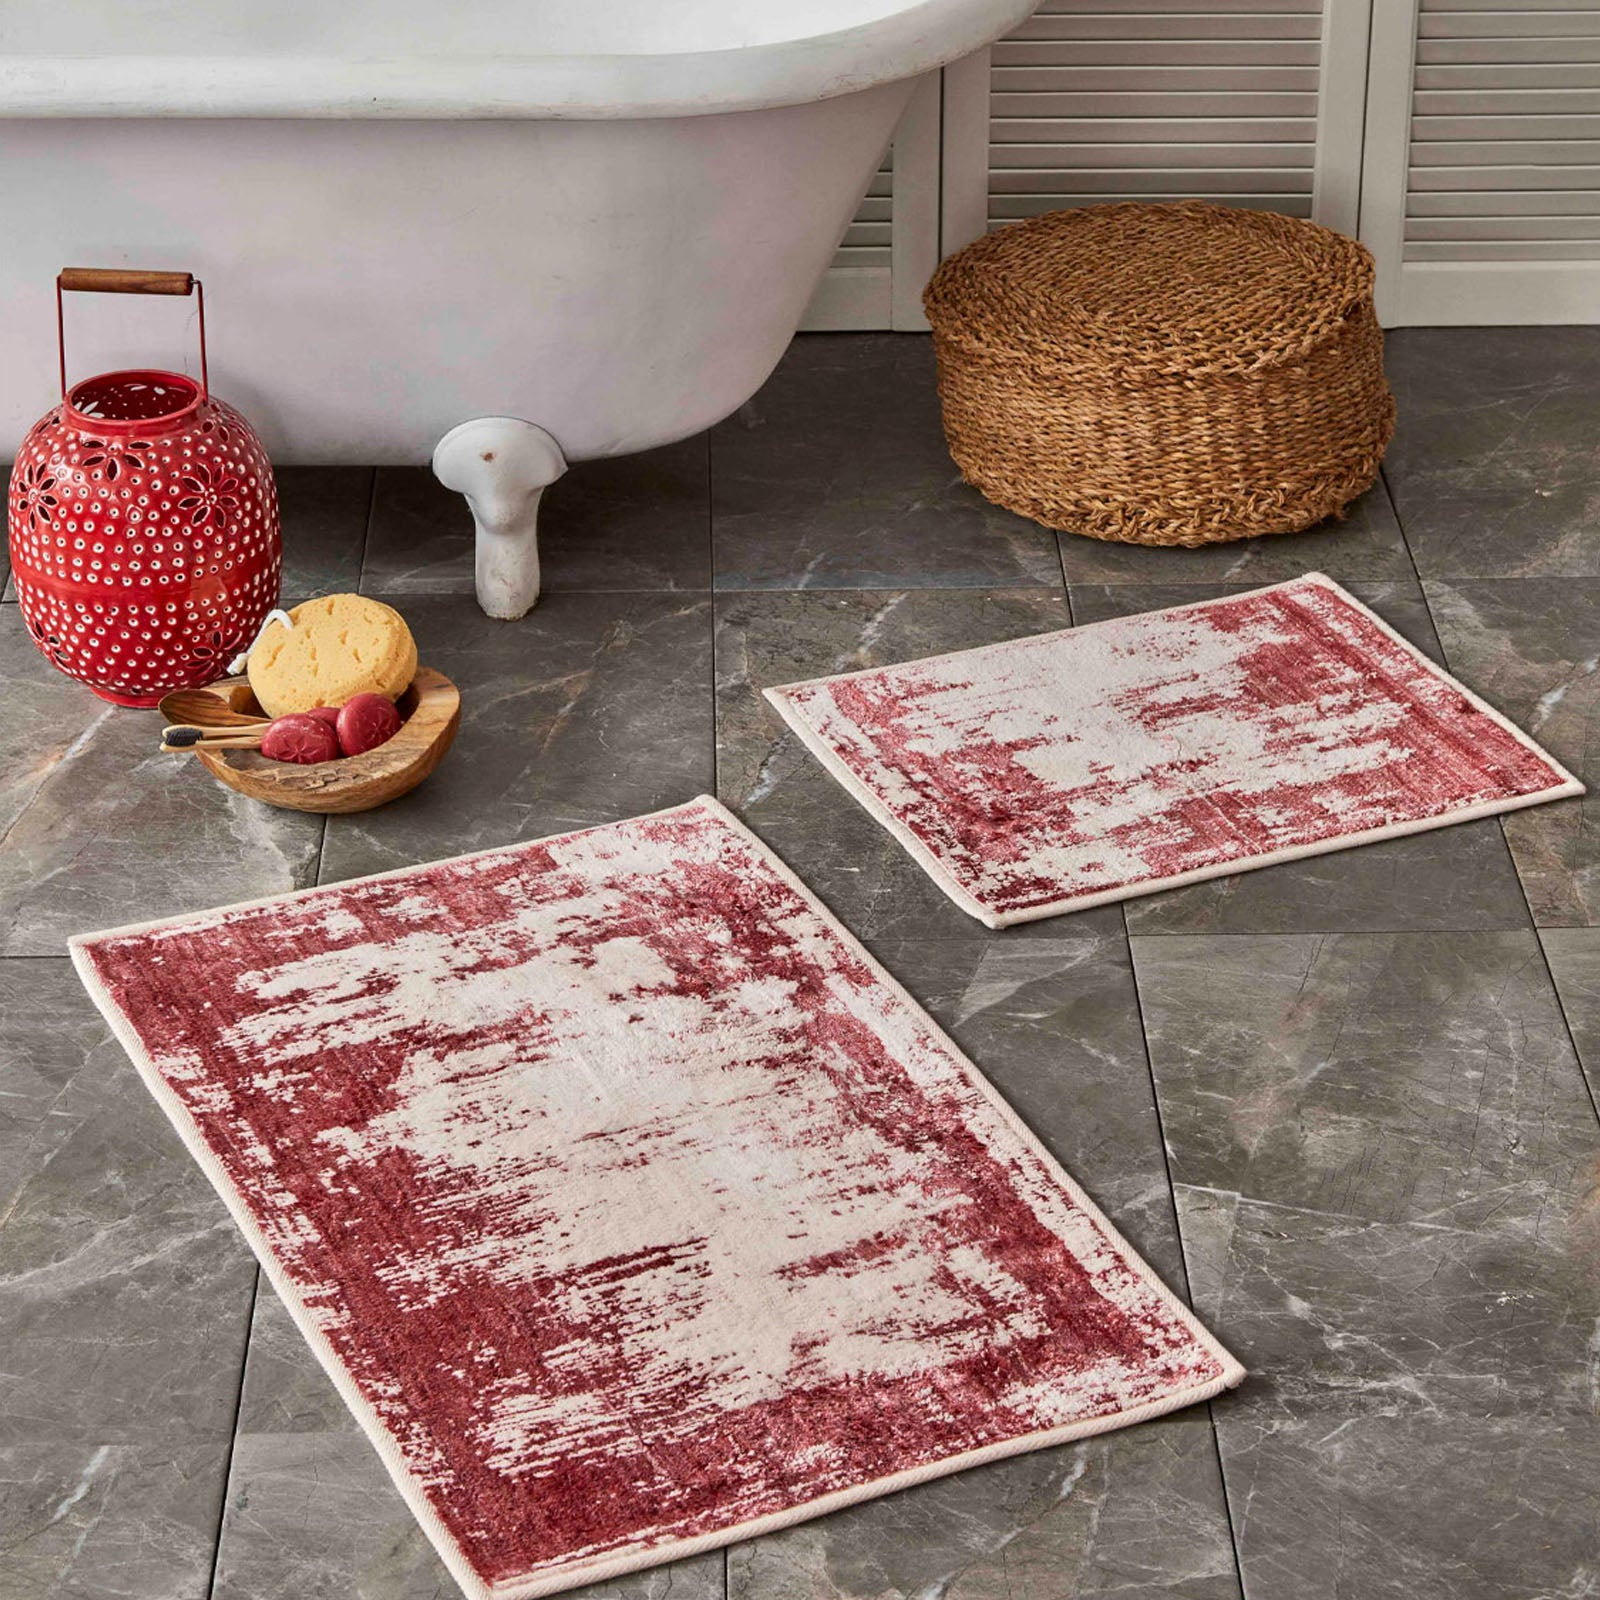 Sarah Anderson Lery red 2-Piece Bath Mat 160.02.01.0361 -  سجادة حمام من قطعتين باللون الأحمر من سارة أندرسون - Shop Online Furniture and Home Decor Store in Dubai, UAE at ebarza